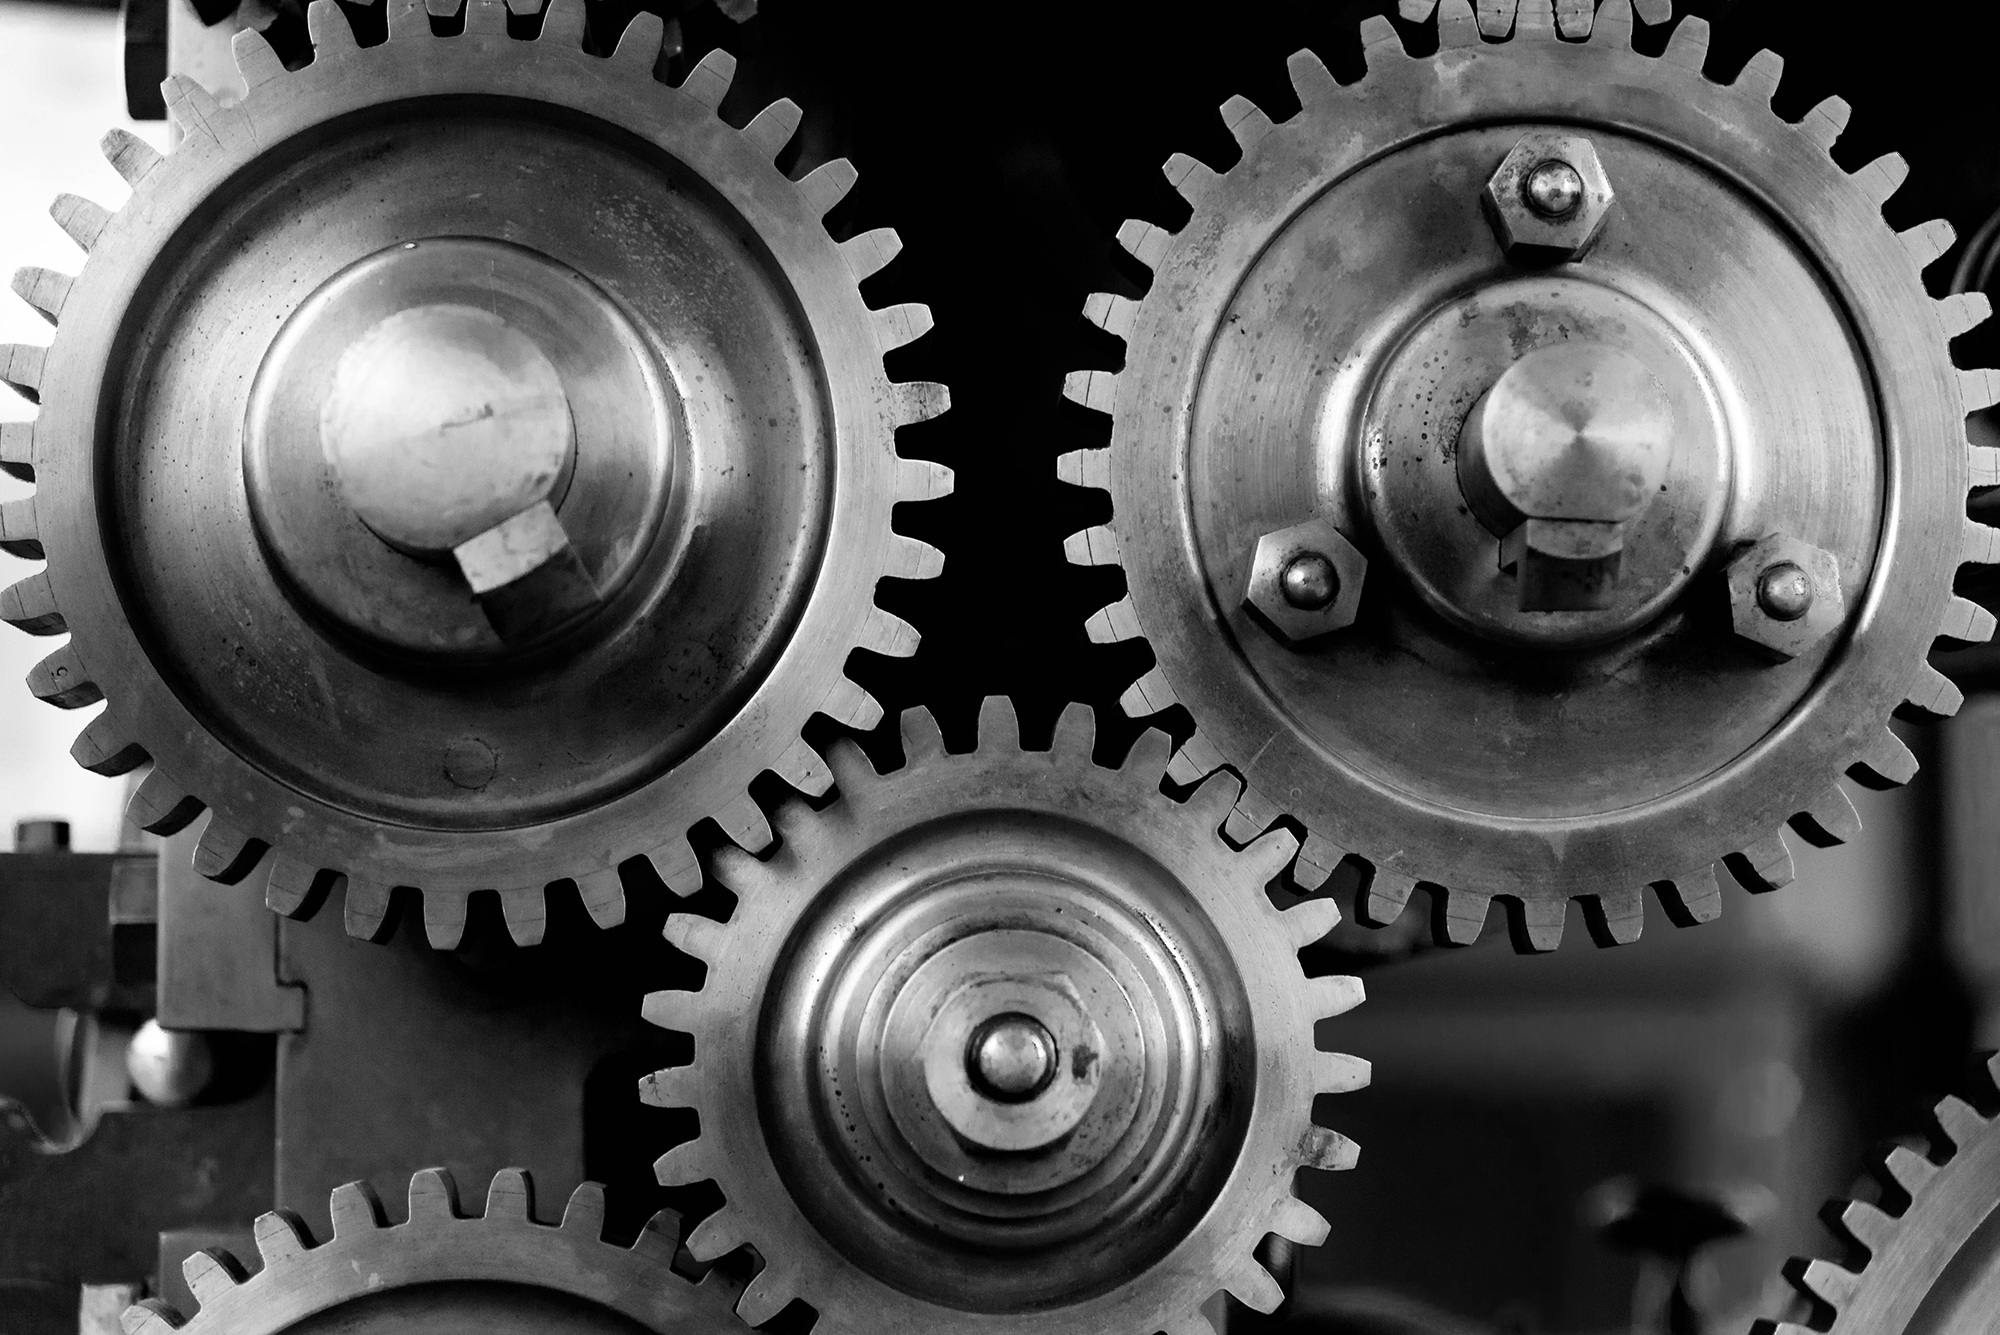 A Quality Project: When to Automate